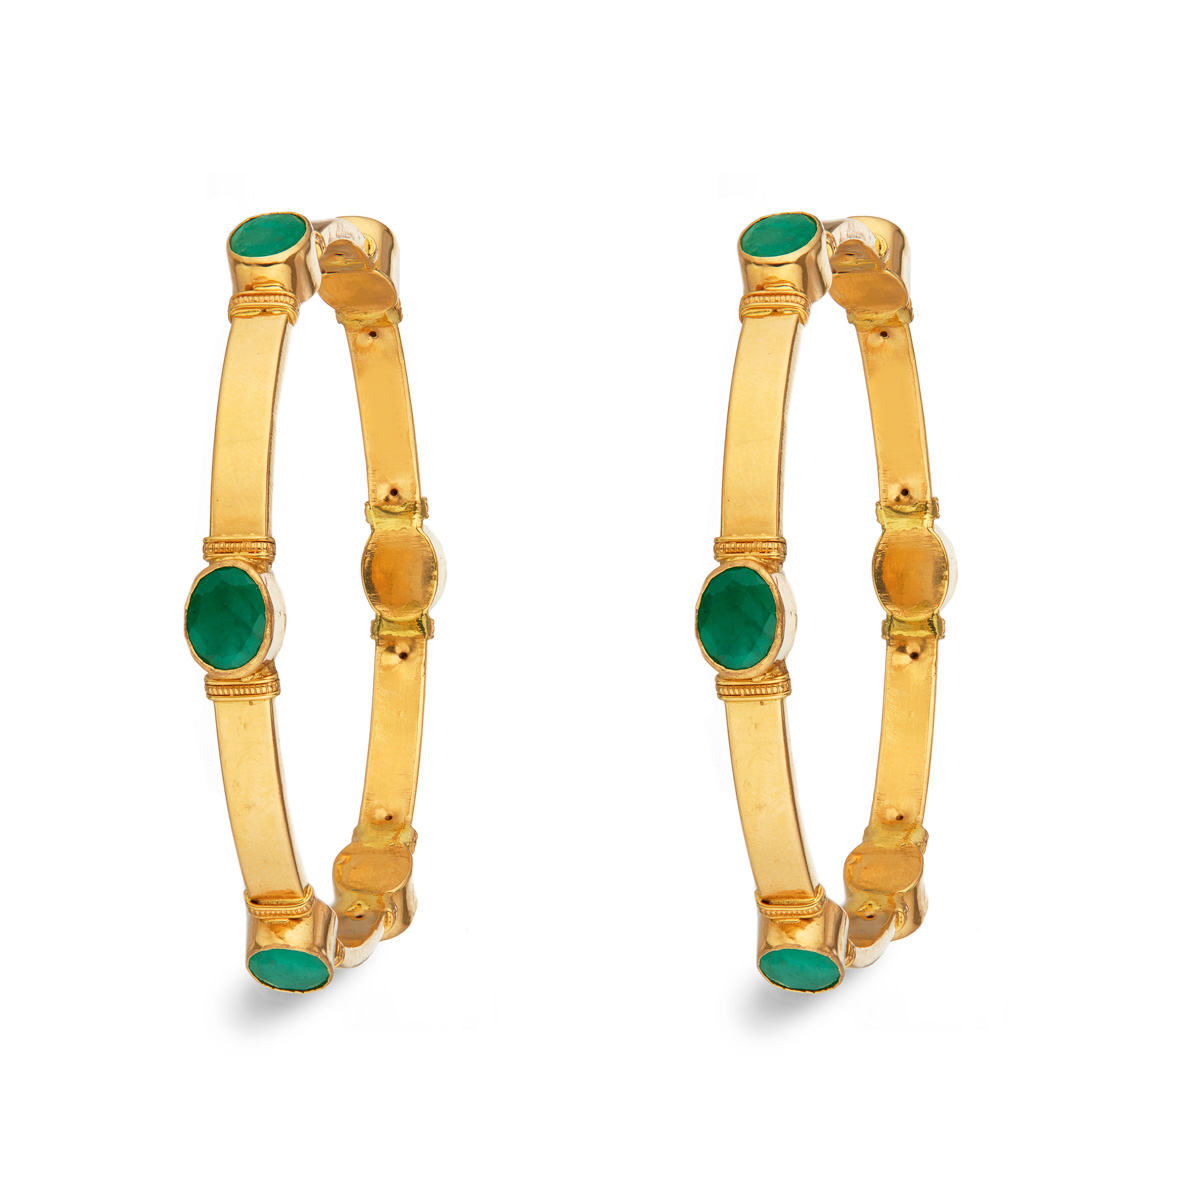 Dazzling Emerald Bangle